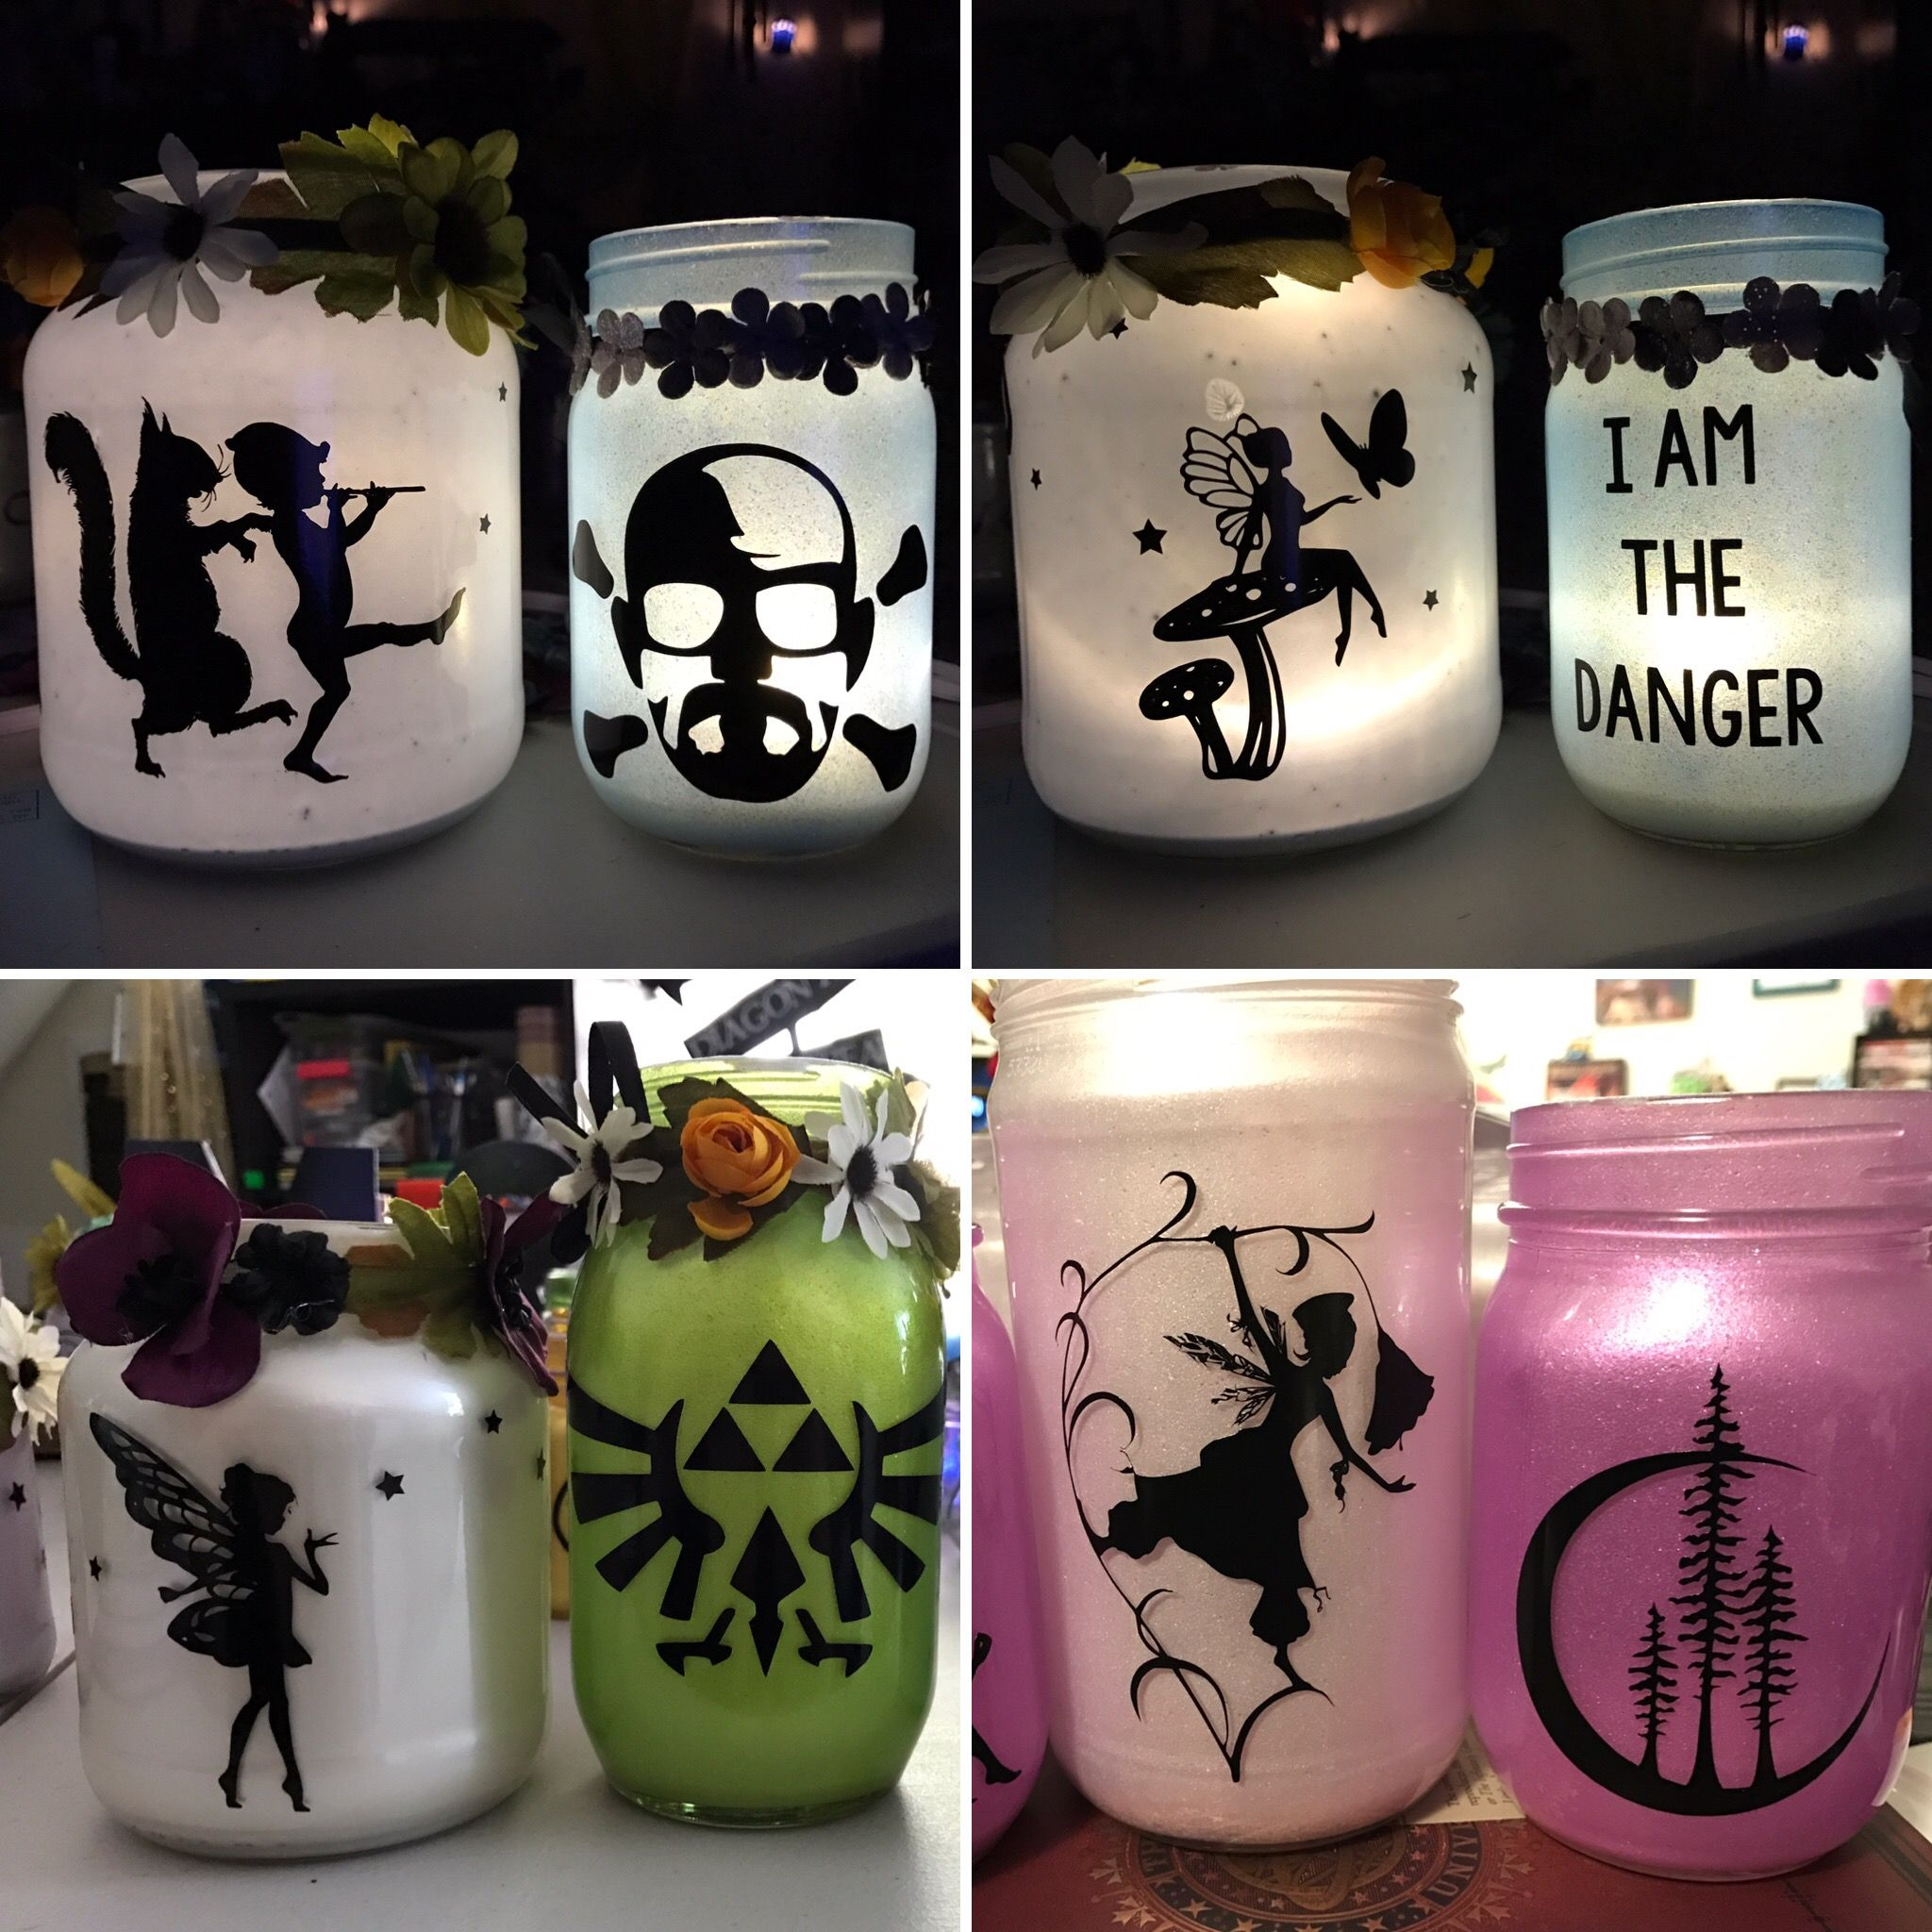 A few of my centerpieces in progress, made with my Cricut!